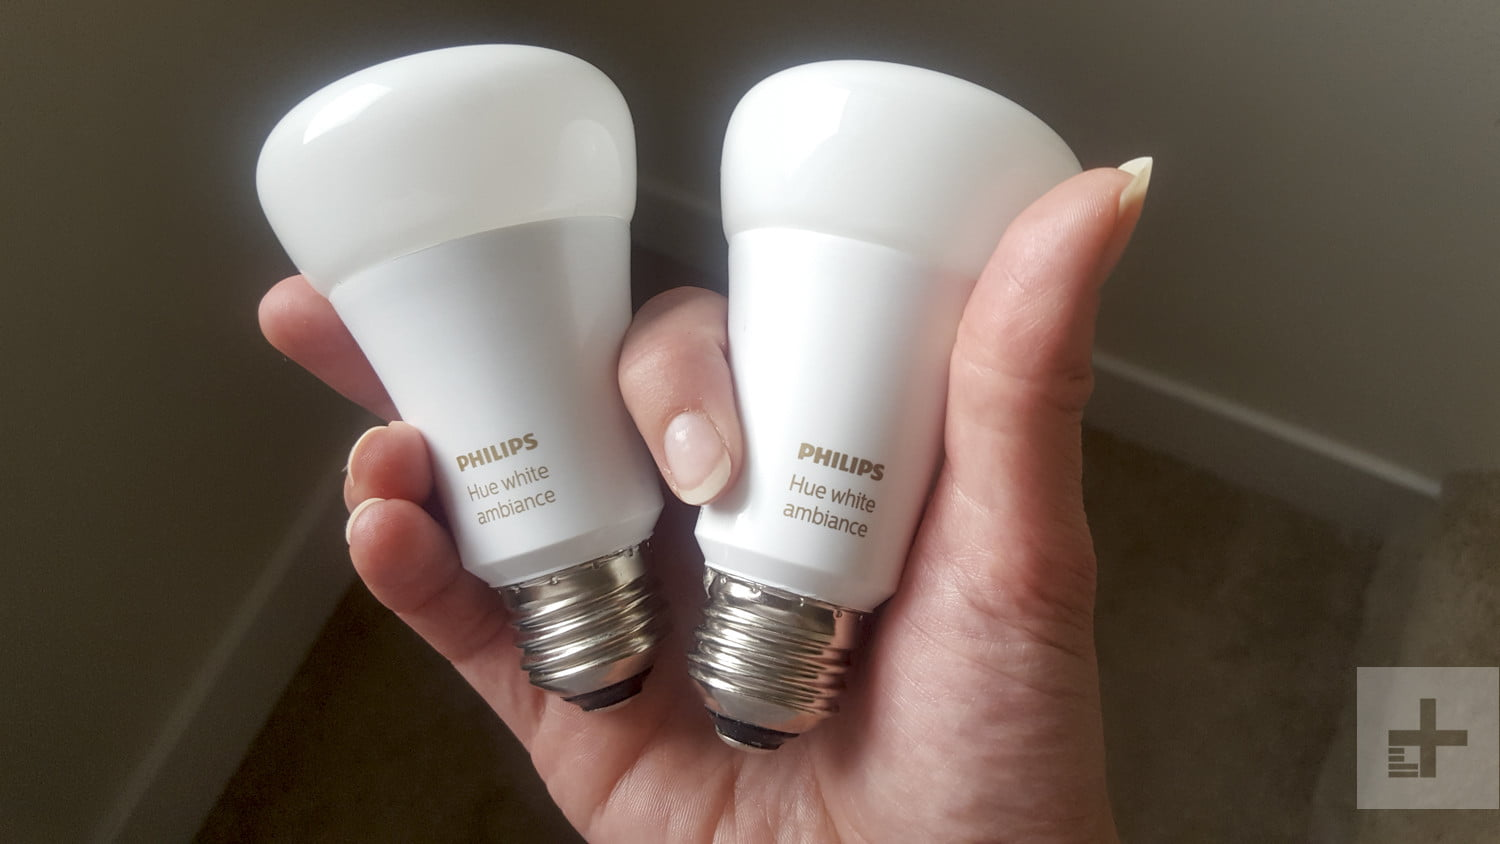 Philips Lampen Plafond Philips Hue White Ambiance Starter Kit Review Digital Trends